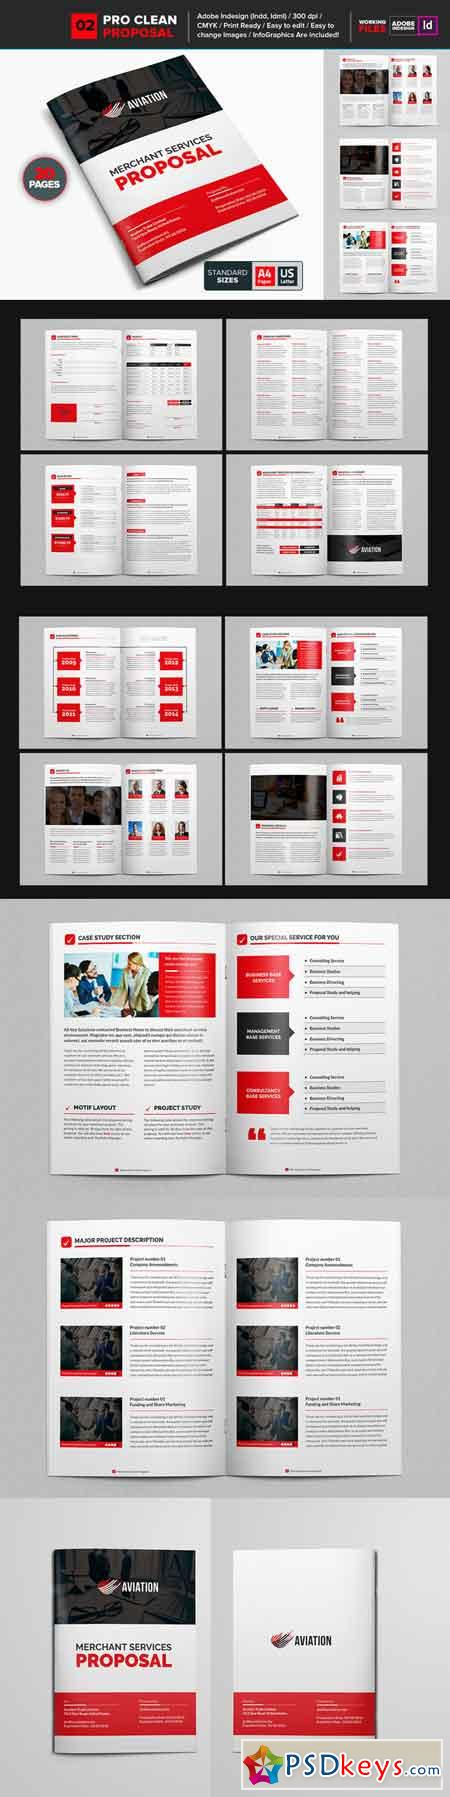 Clean Proposal Brochure Template 01 681496